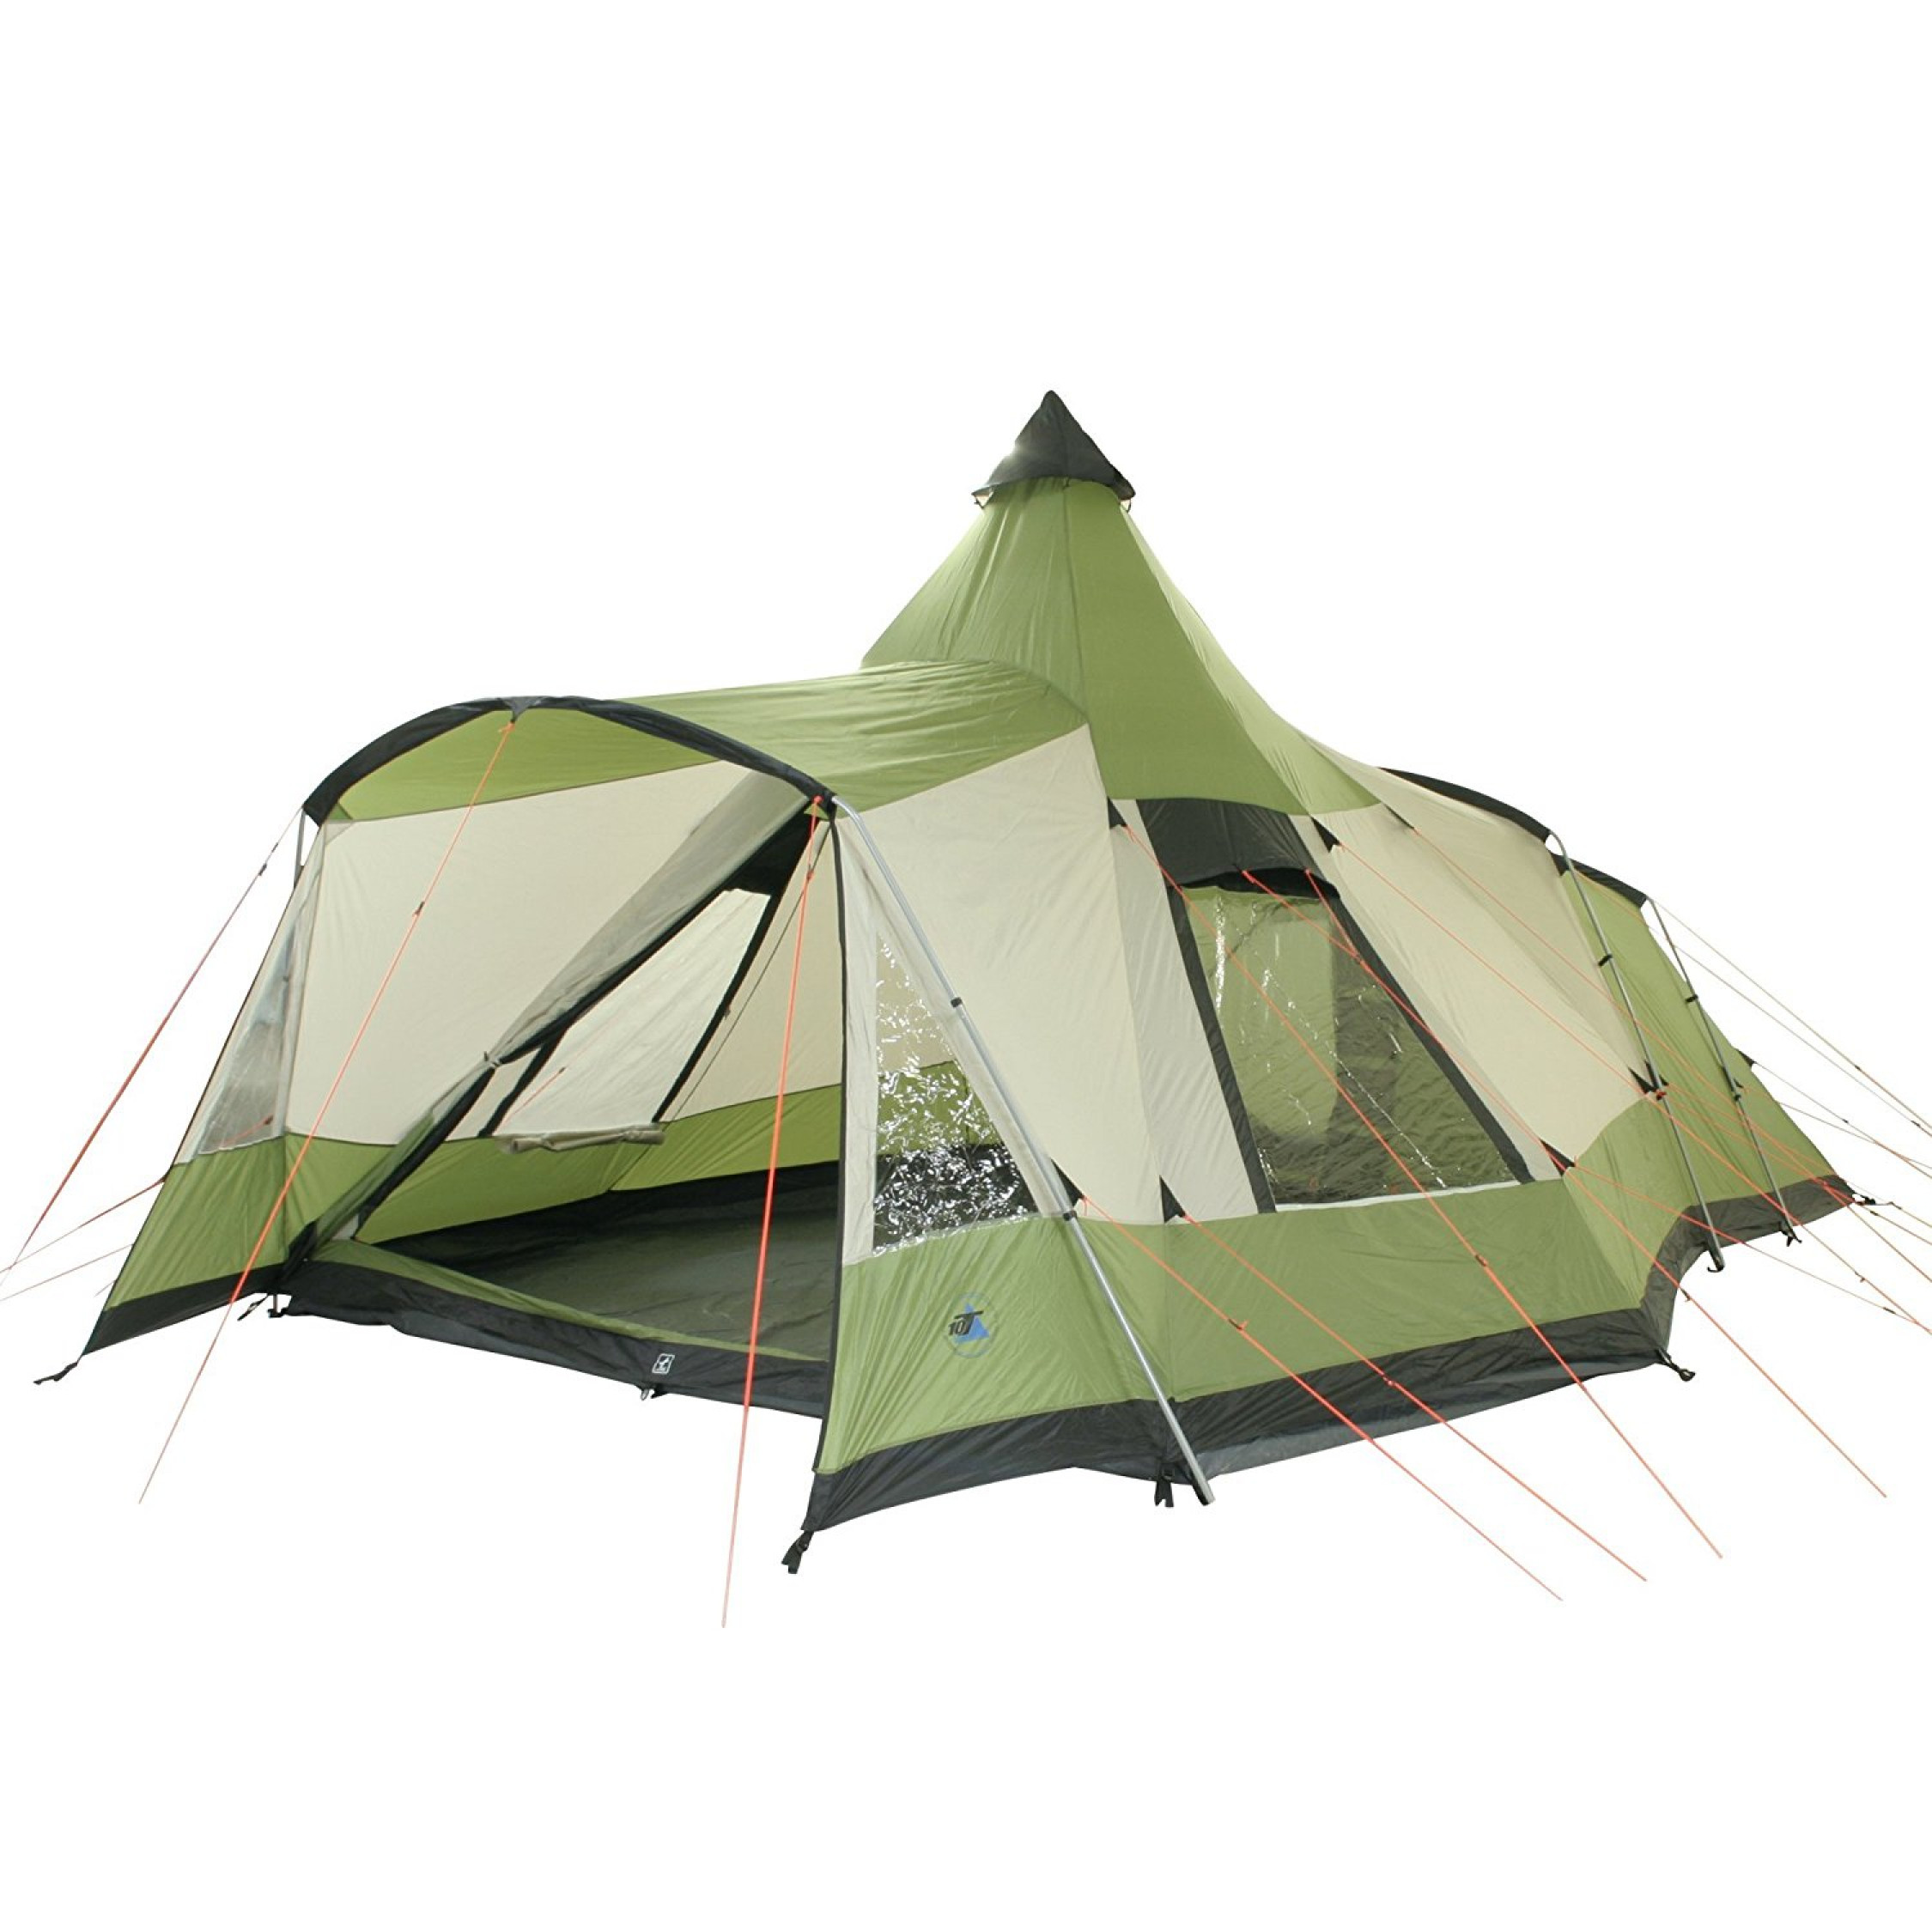 Huge Waterproof 5 Person Tent Durable Stable 5000mm